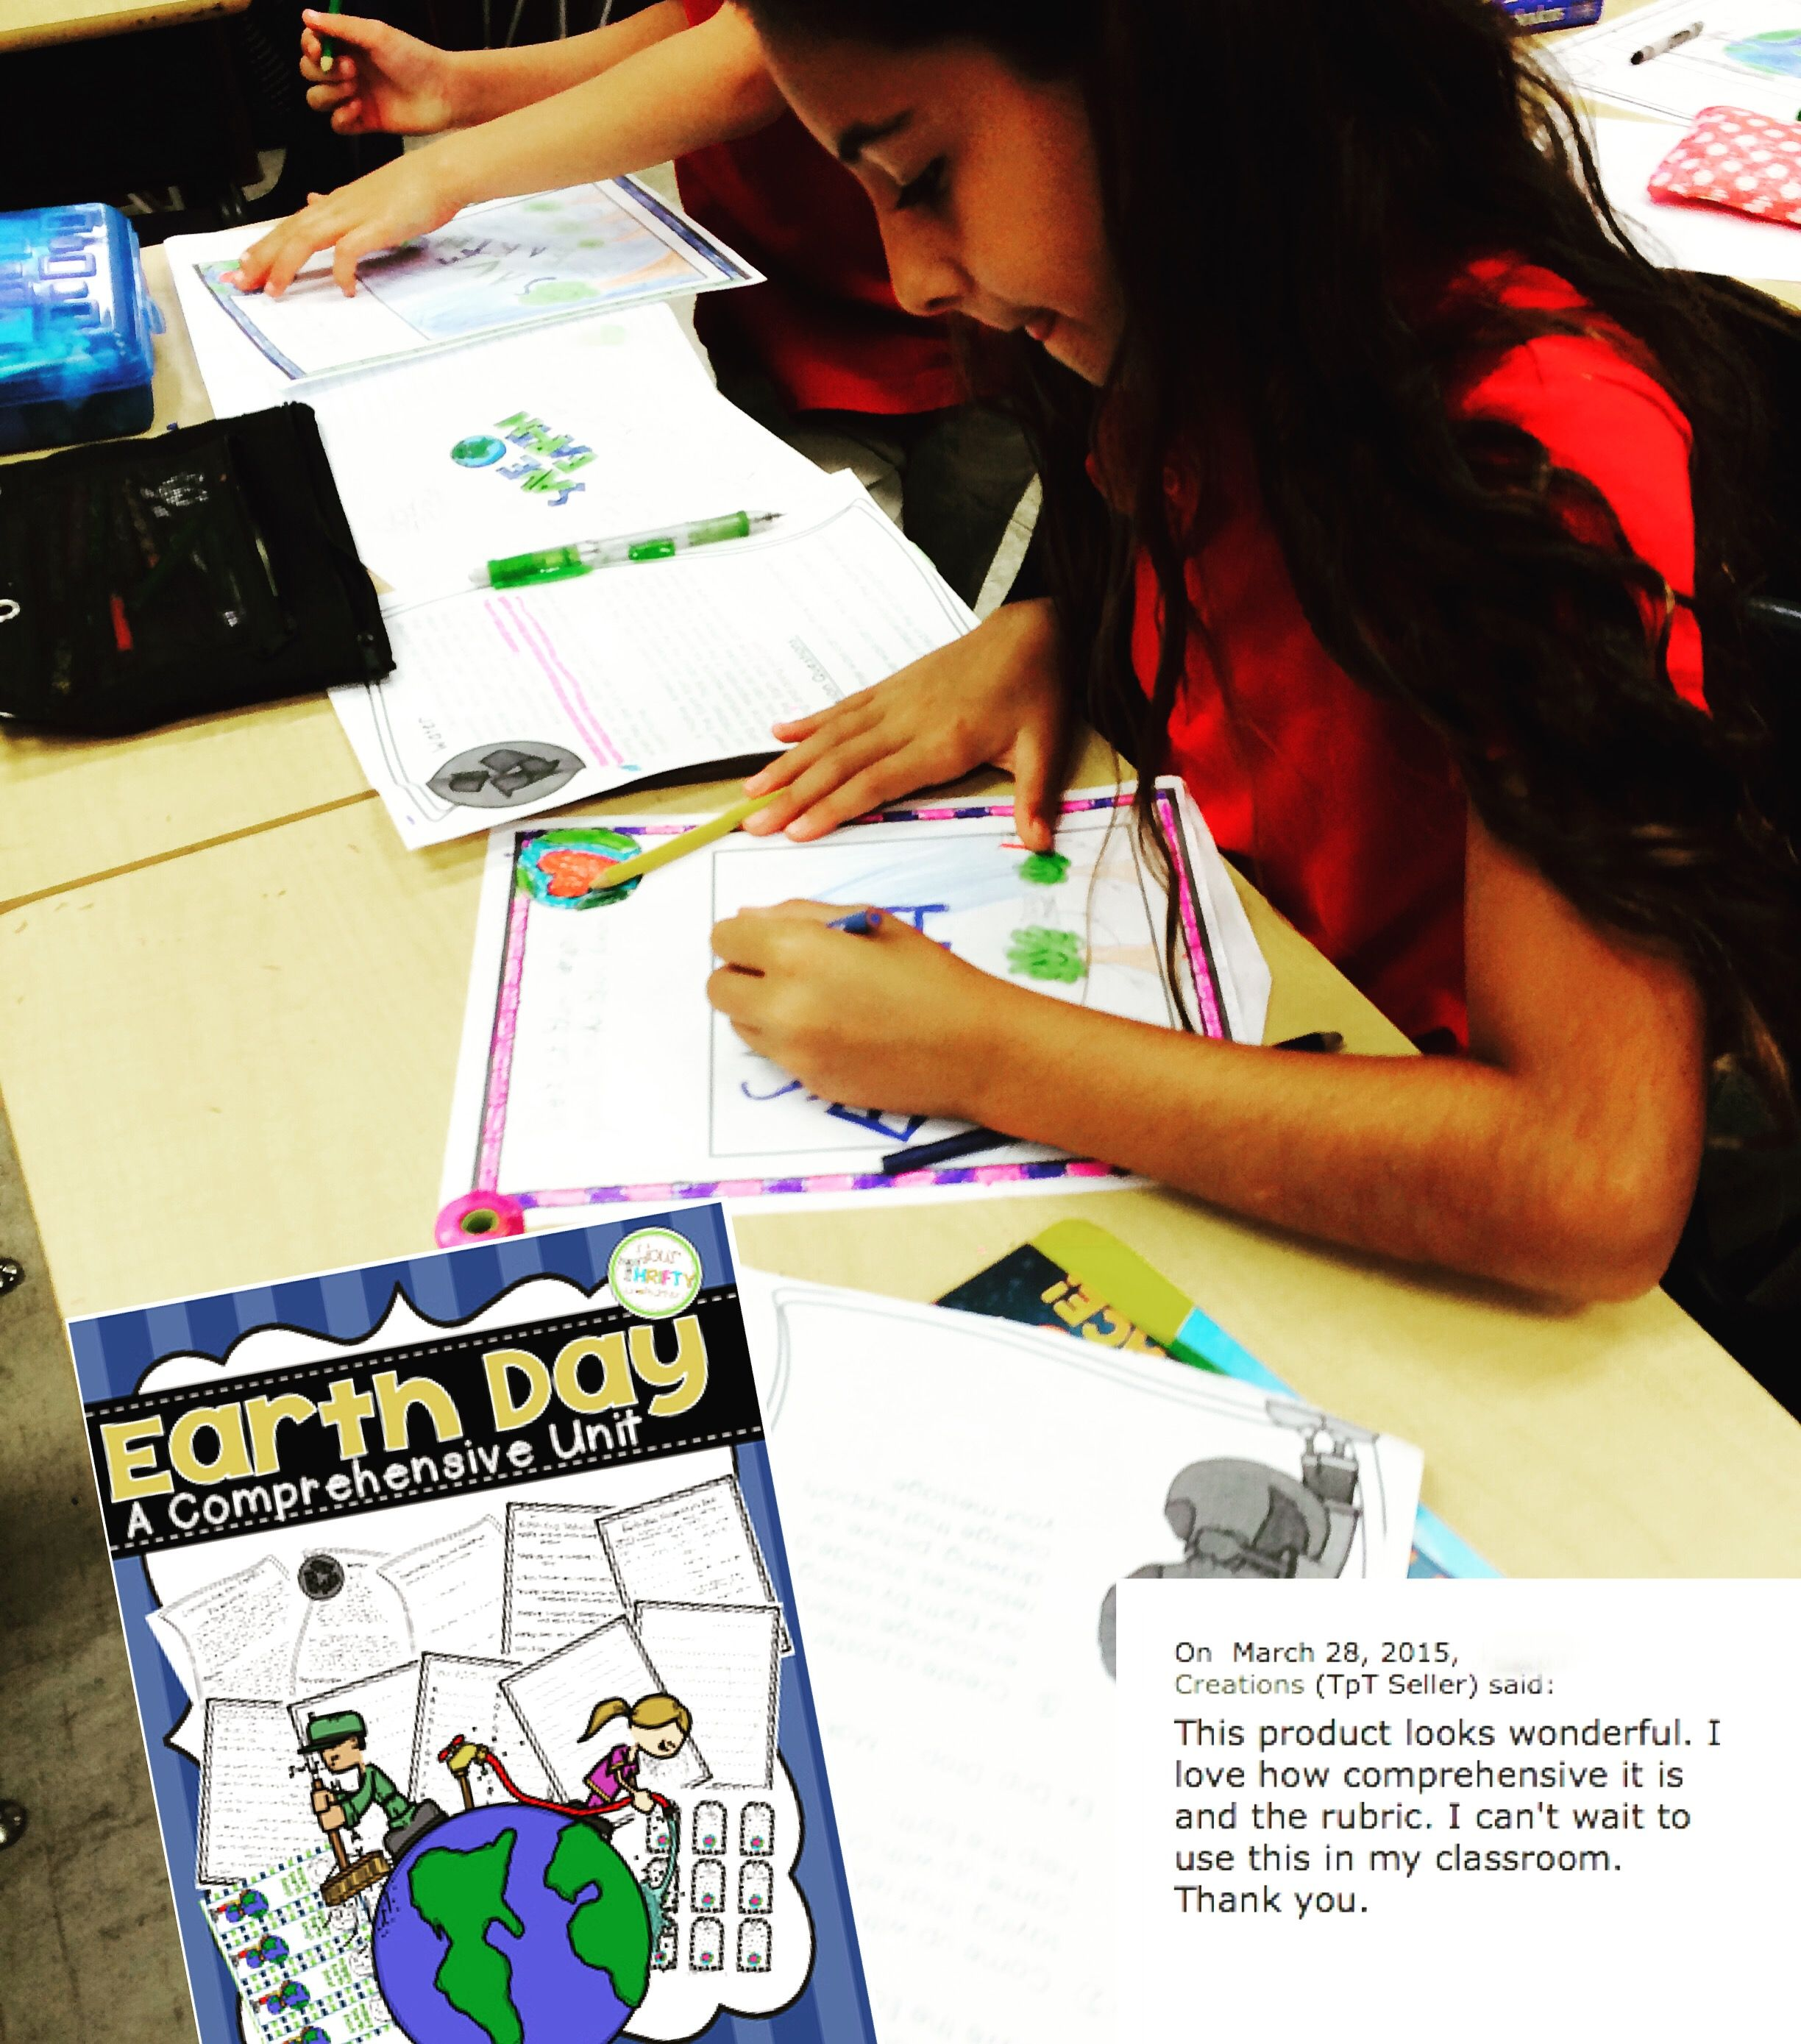 Earth Day Comprehensive Unit Reading Passage Project